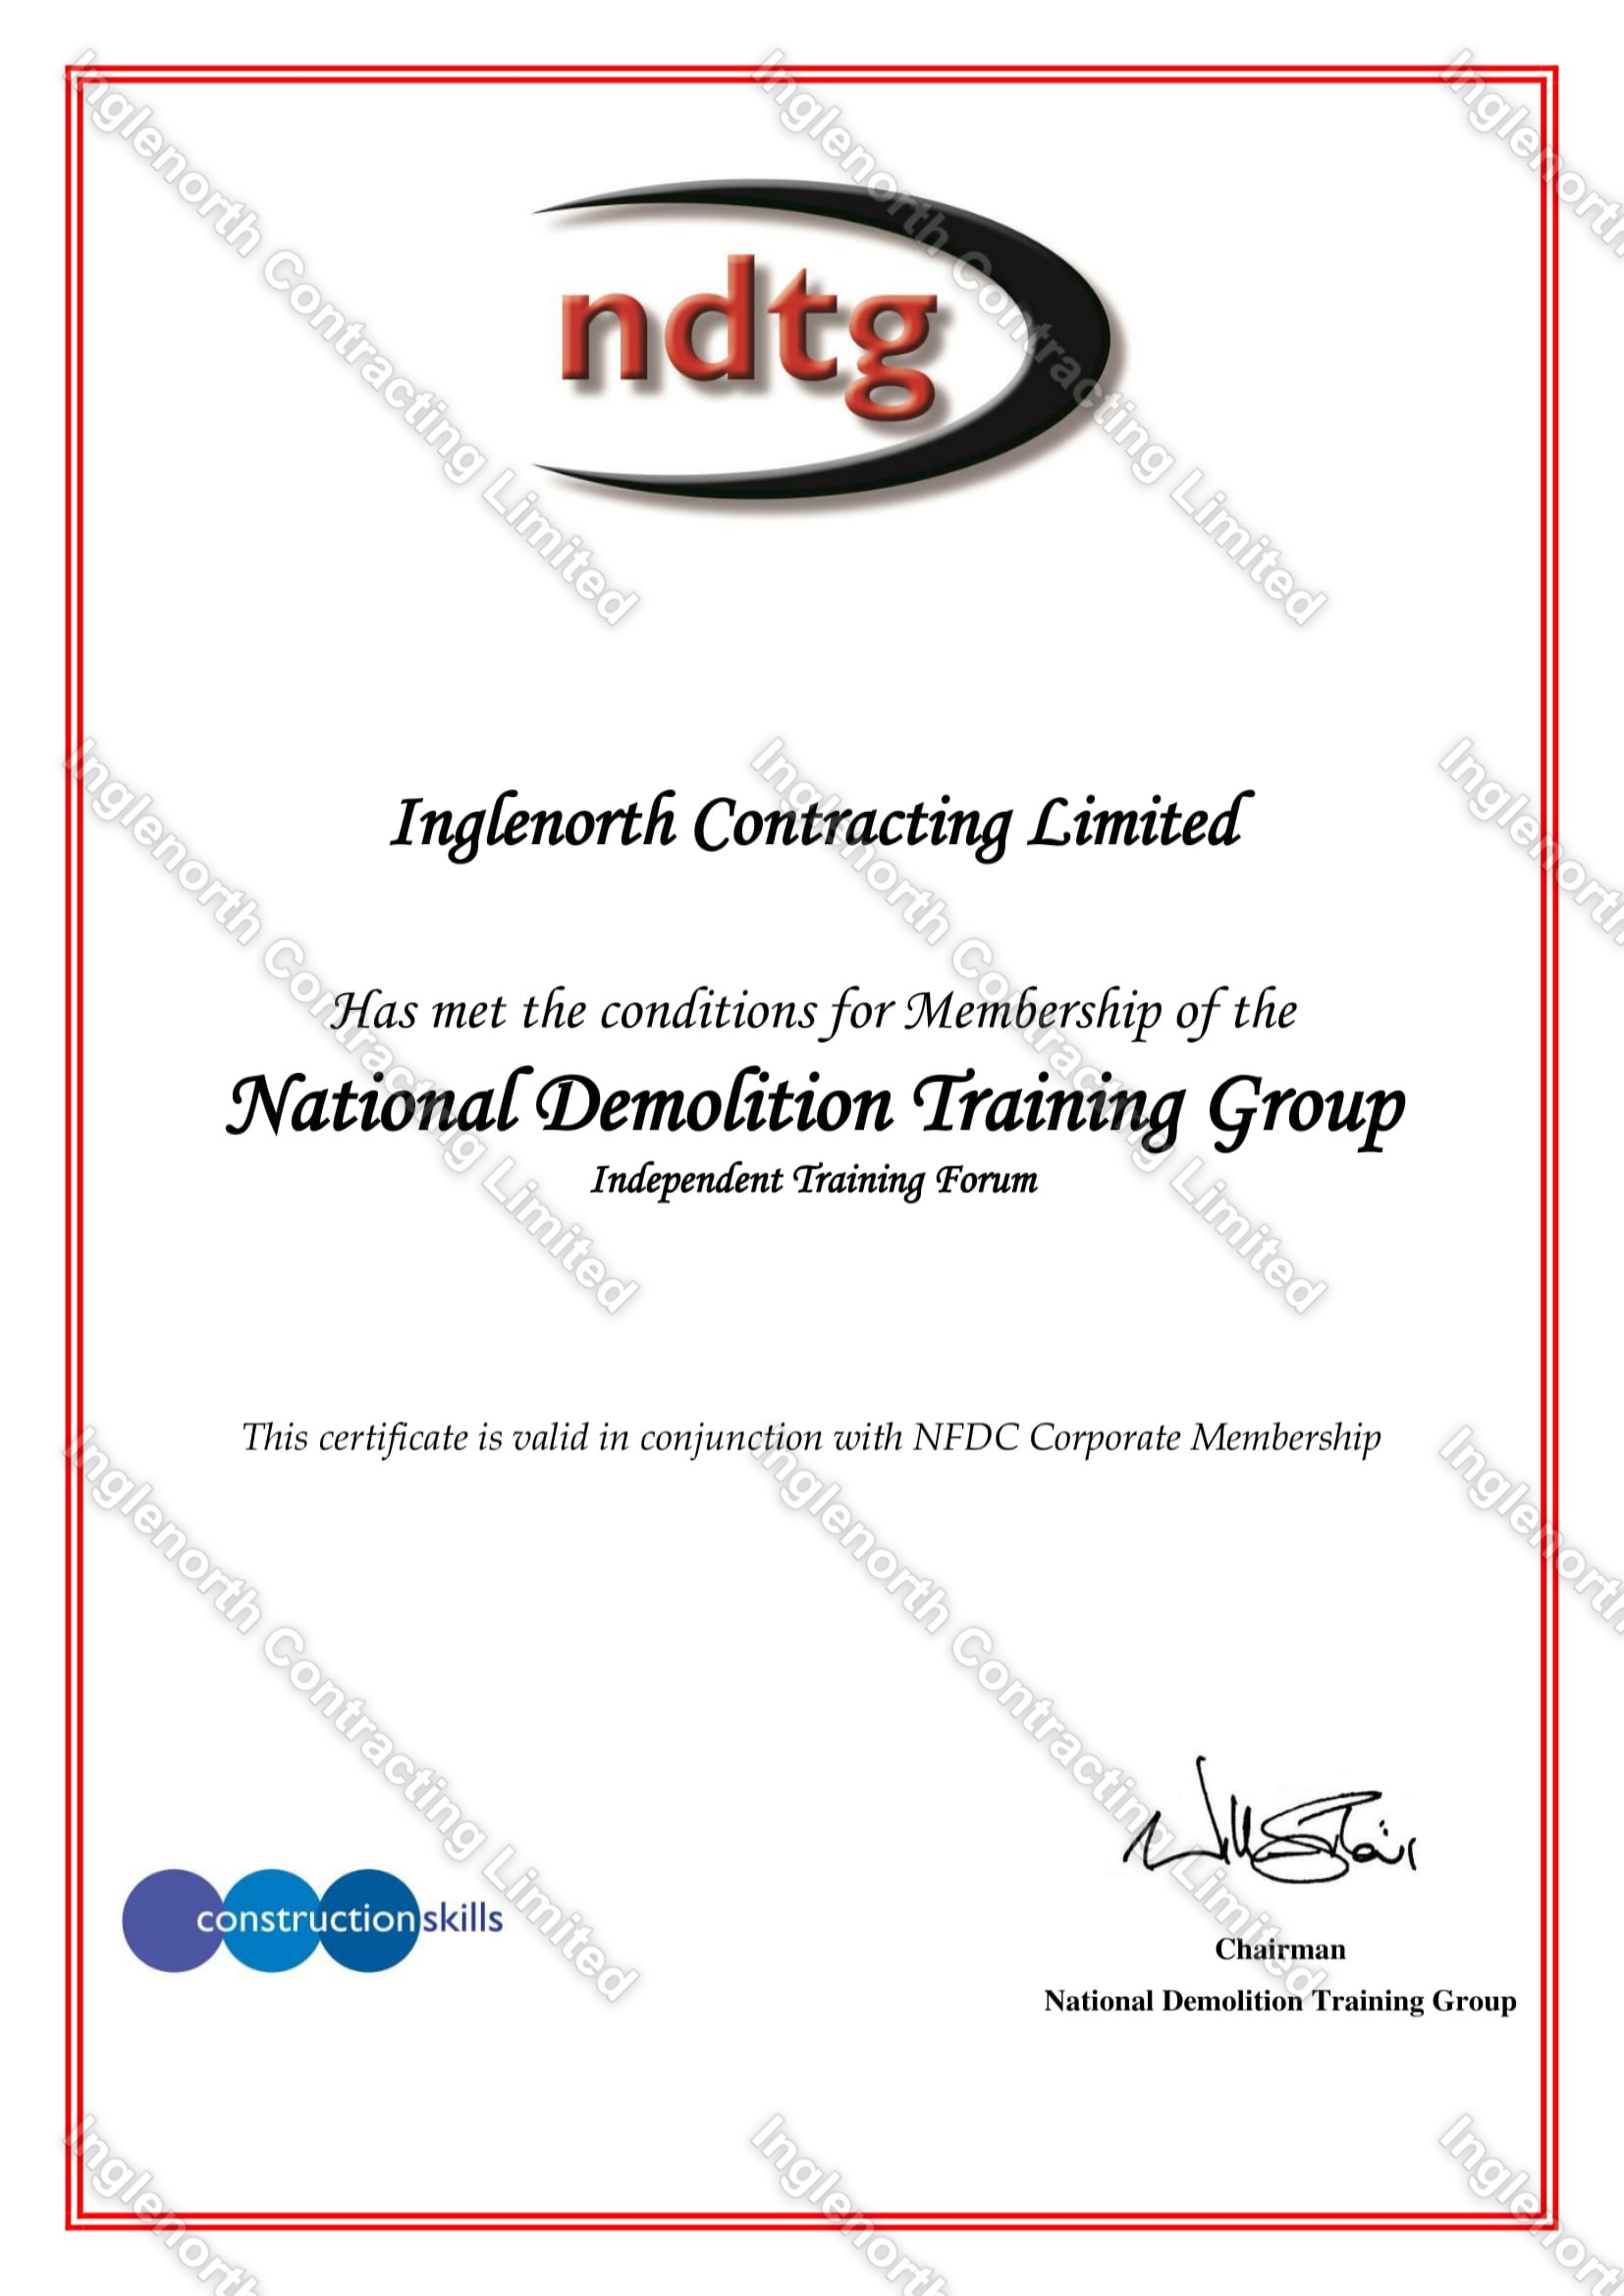 NDTG – National Demolition Training Group